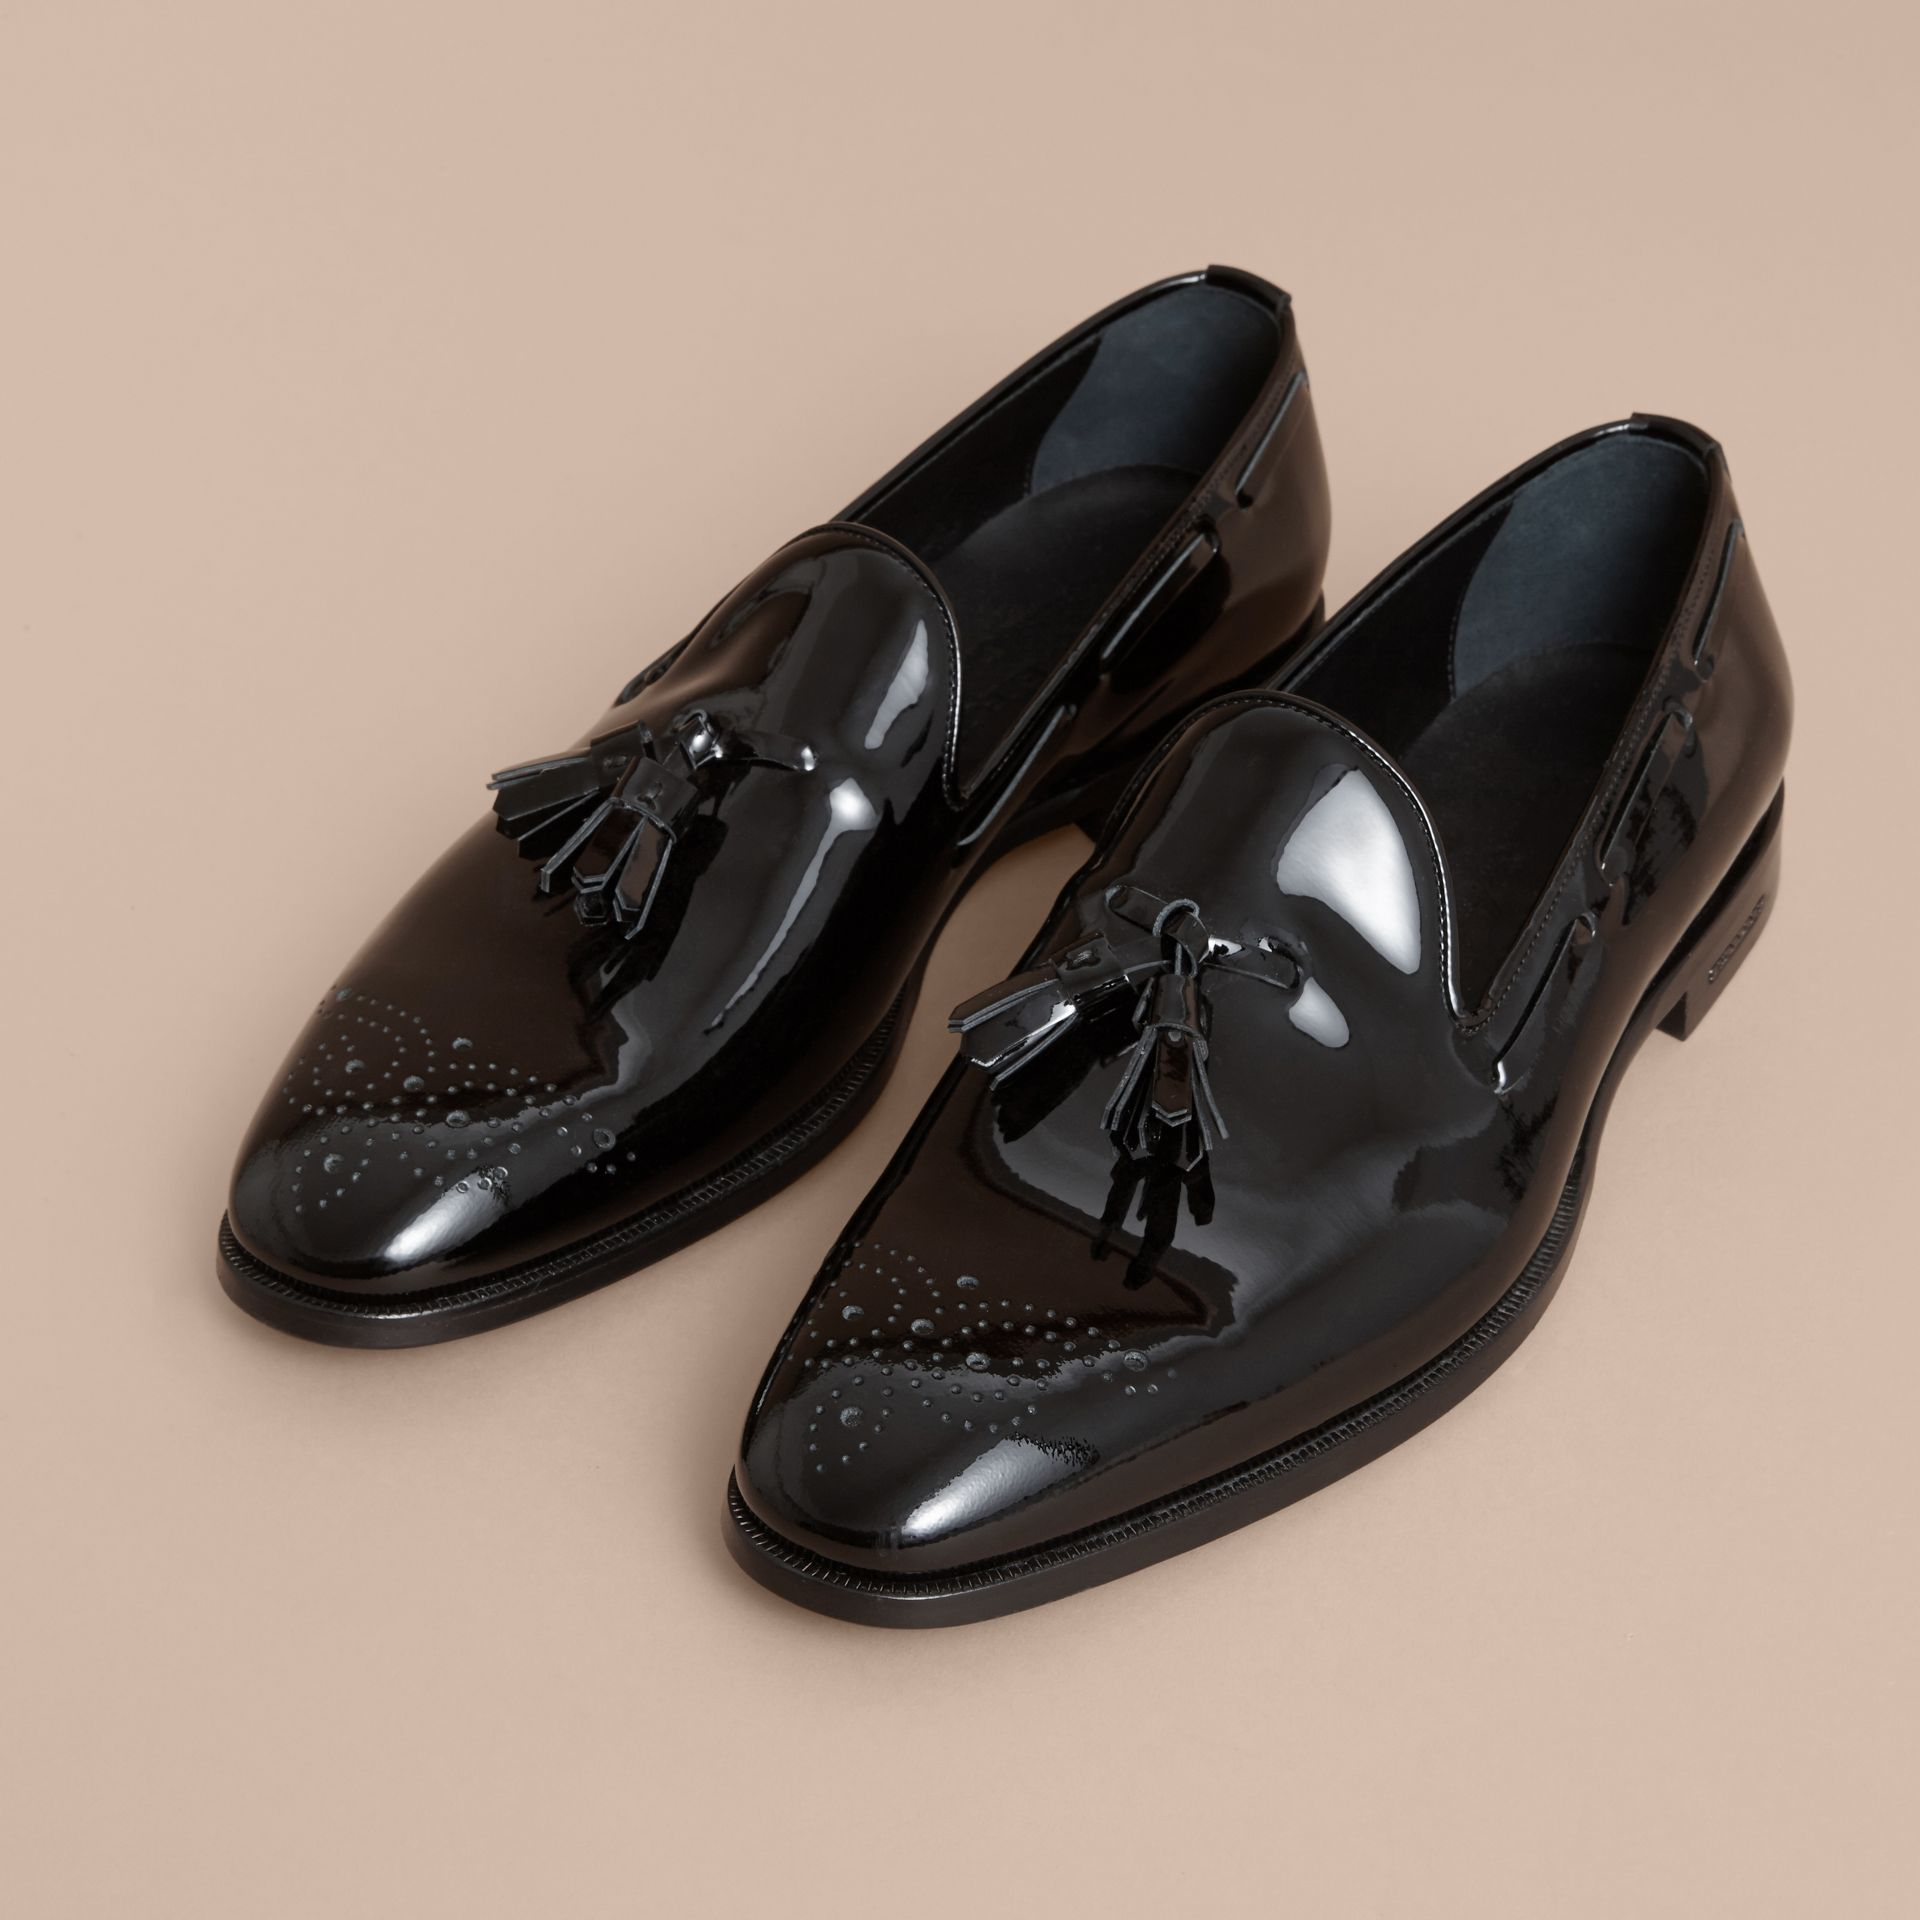 Tasselled Patent Leather Loafers in Black - Men | Burberry Hong Kong - gallery image 4